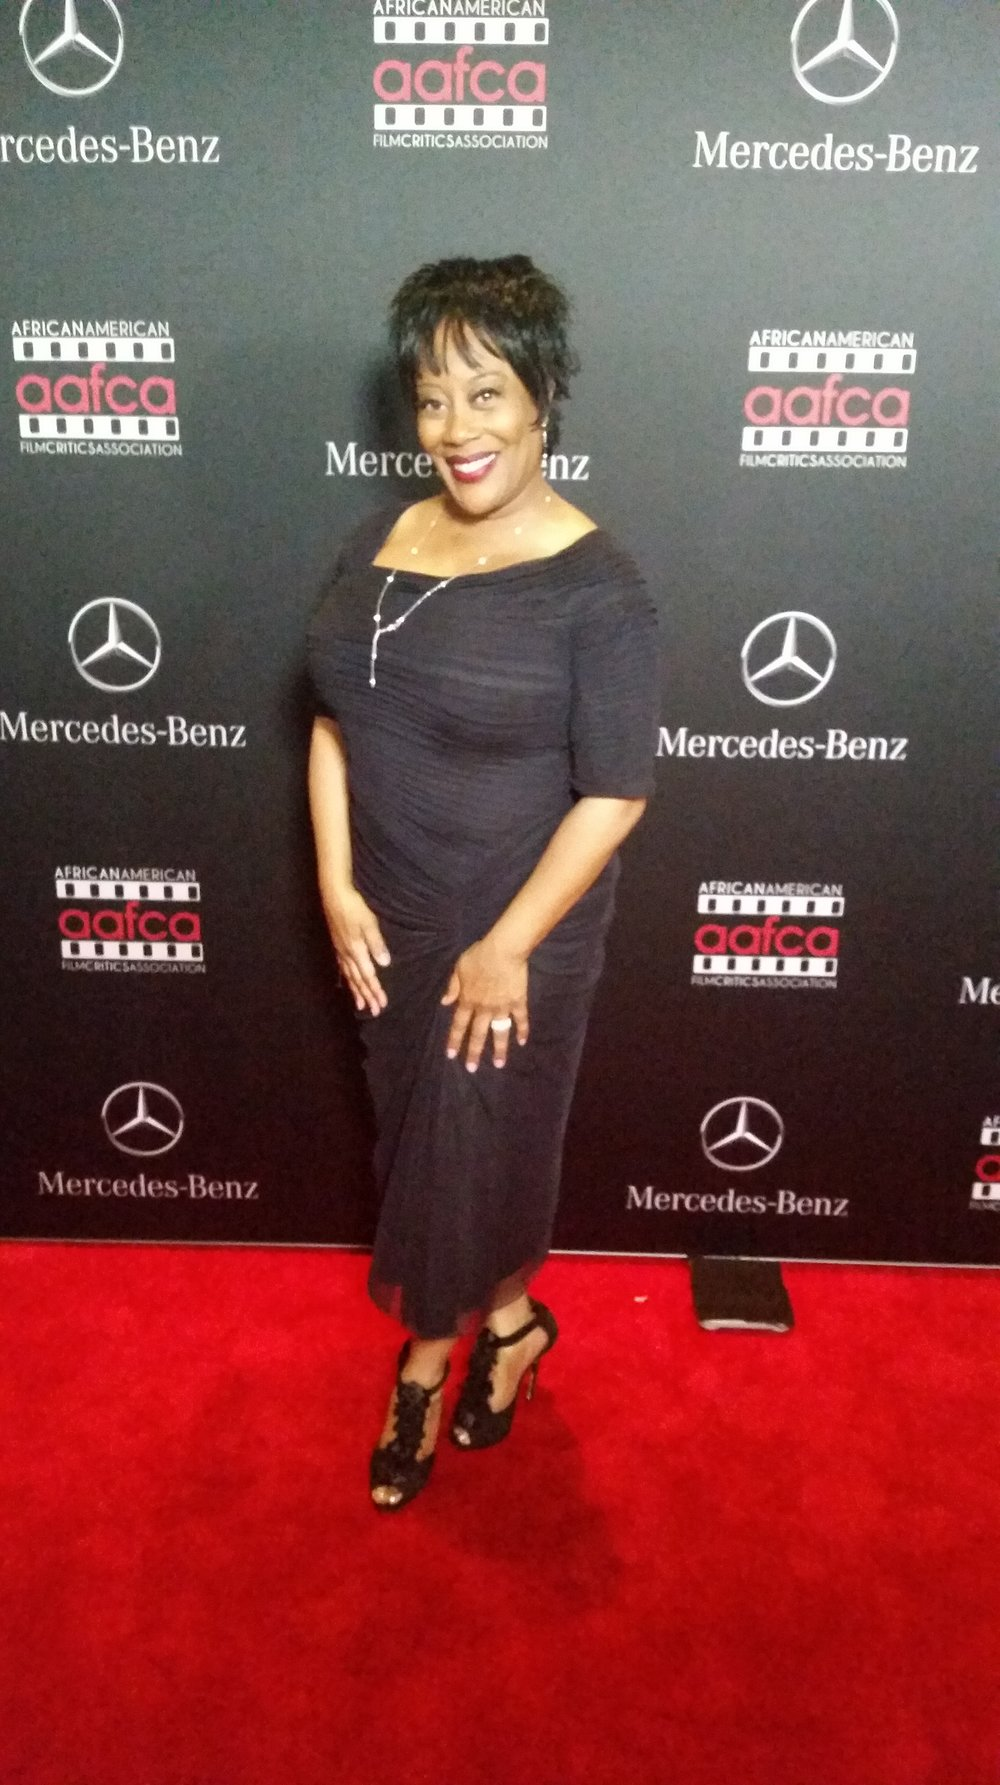 carla renata on the red carpet at the aafca oscar screening party